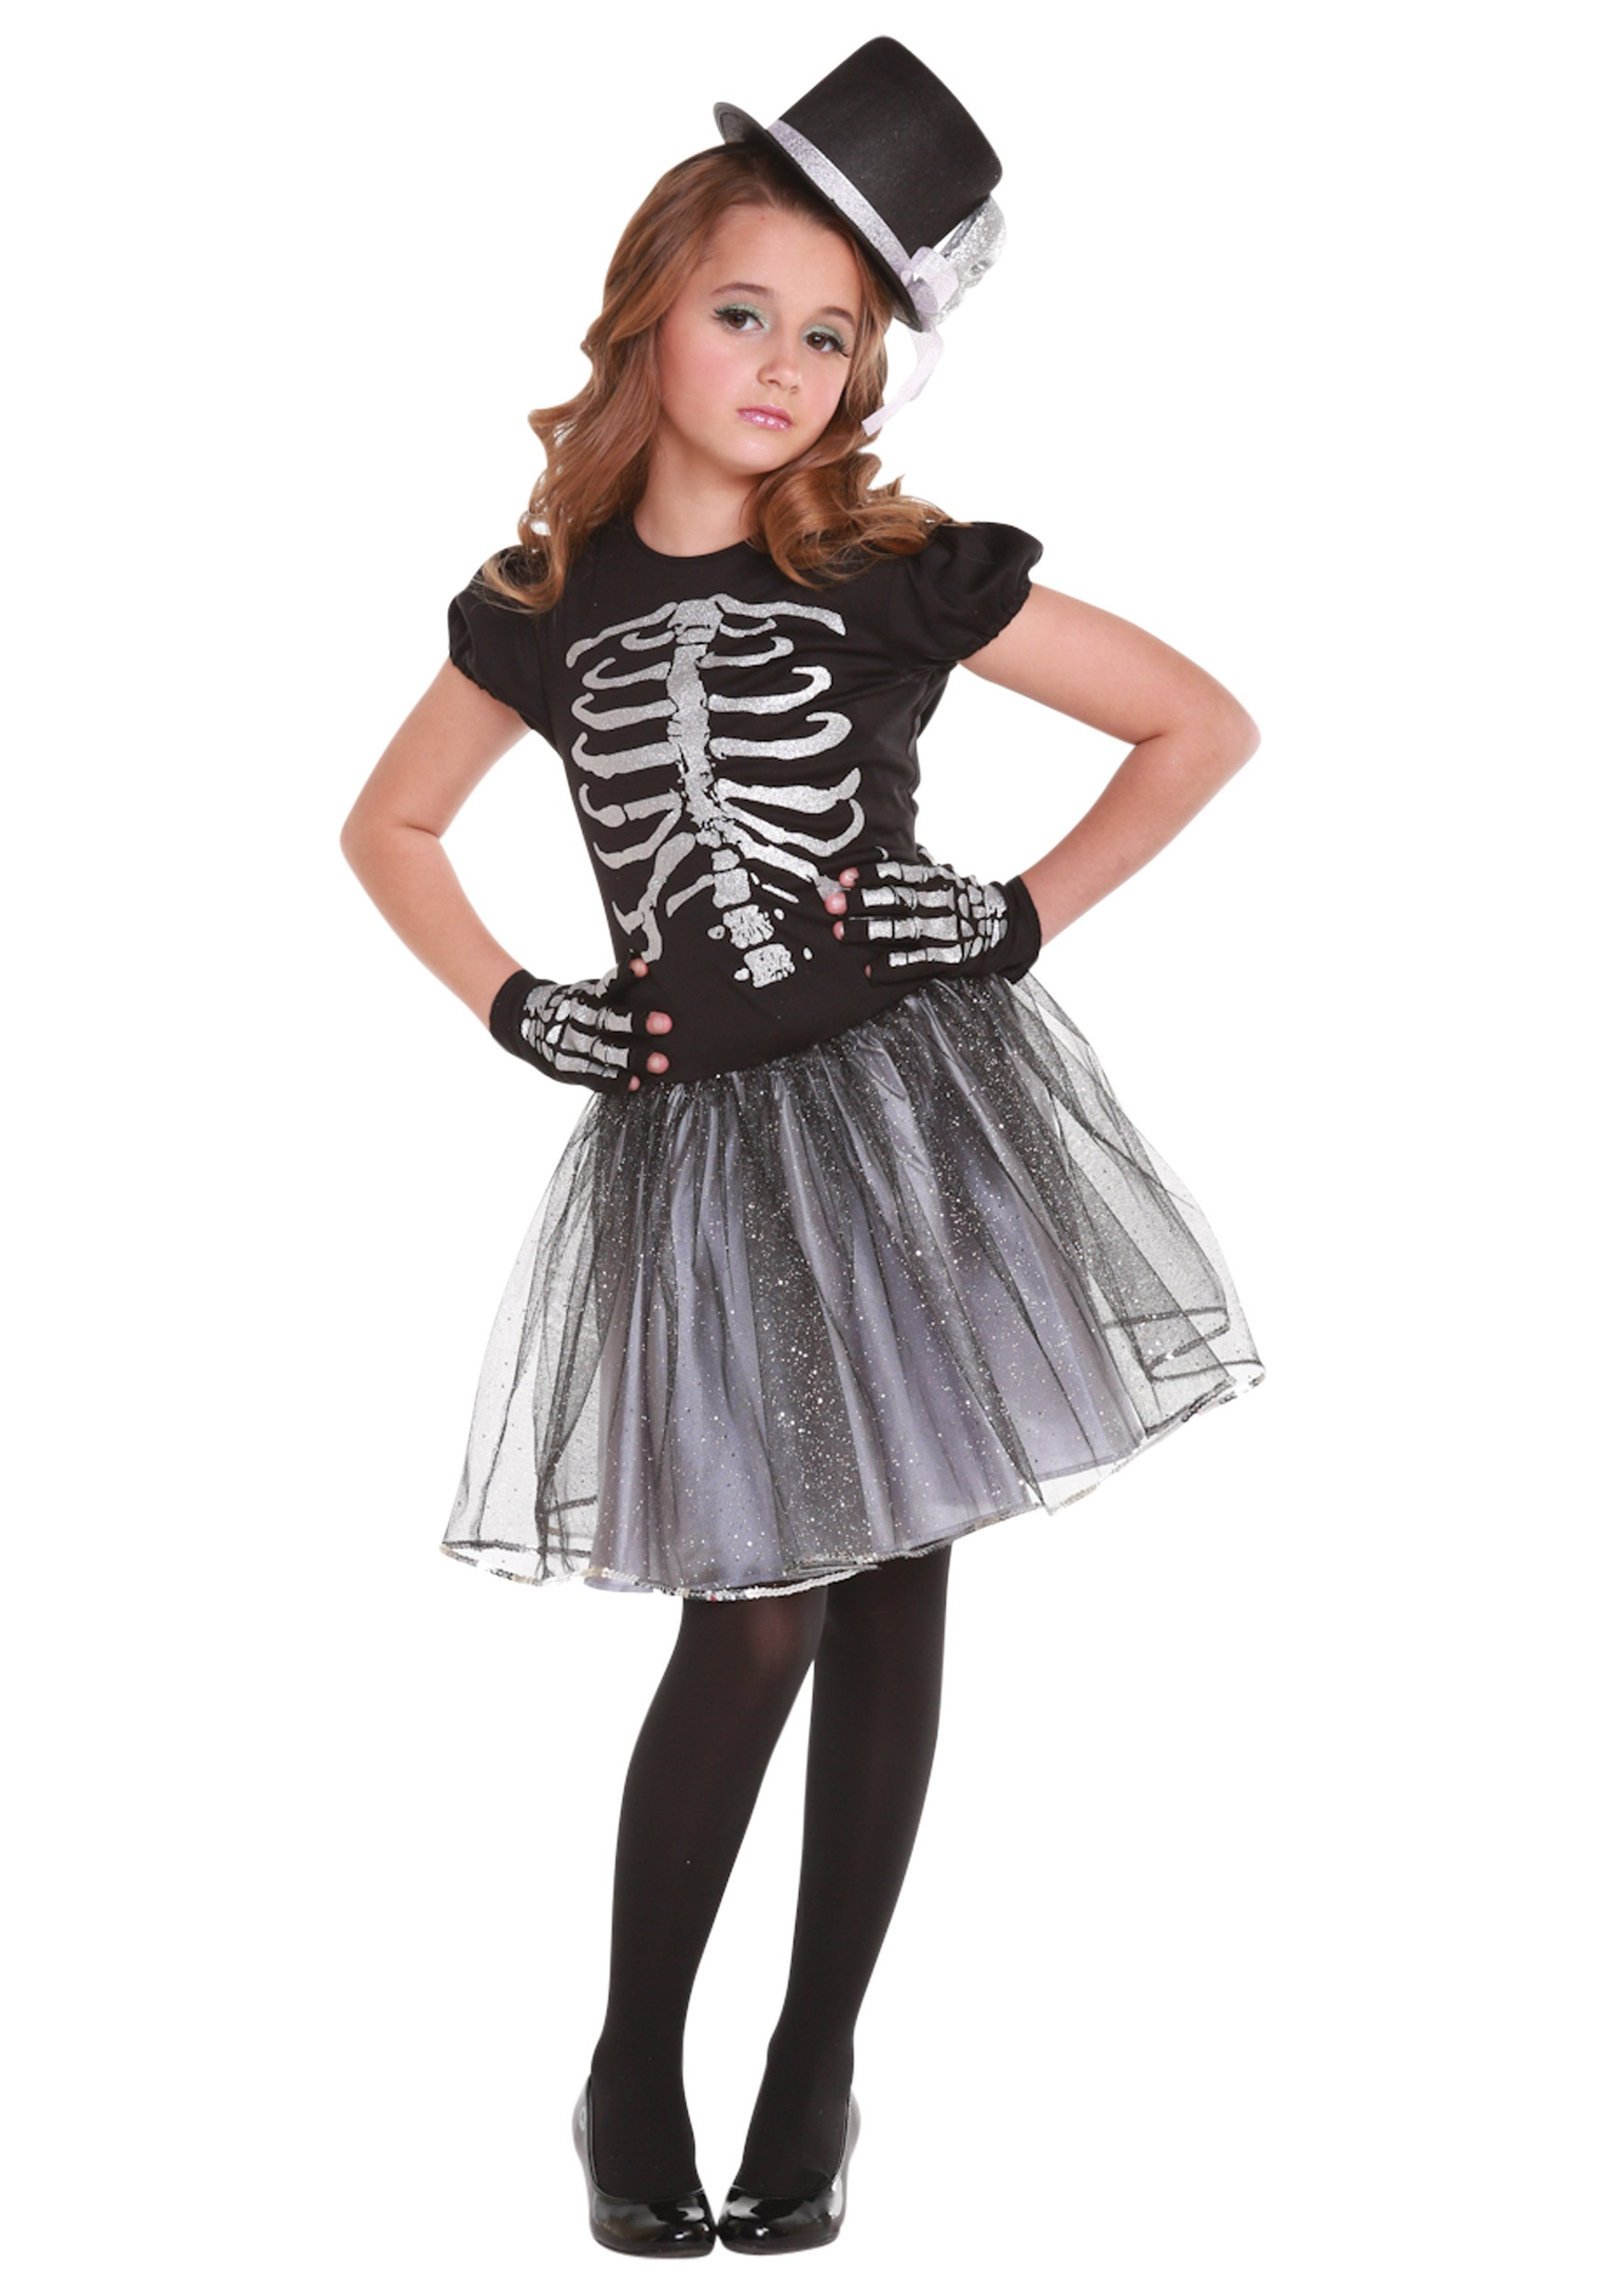 Girls Silver Skeleton Costume  sc 1 st  Halloween Costumes & Girls Silver Skeleton Costume - Halloween Costumes